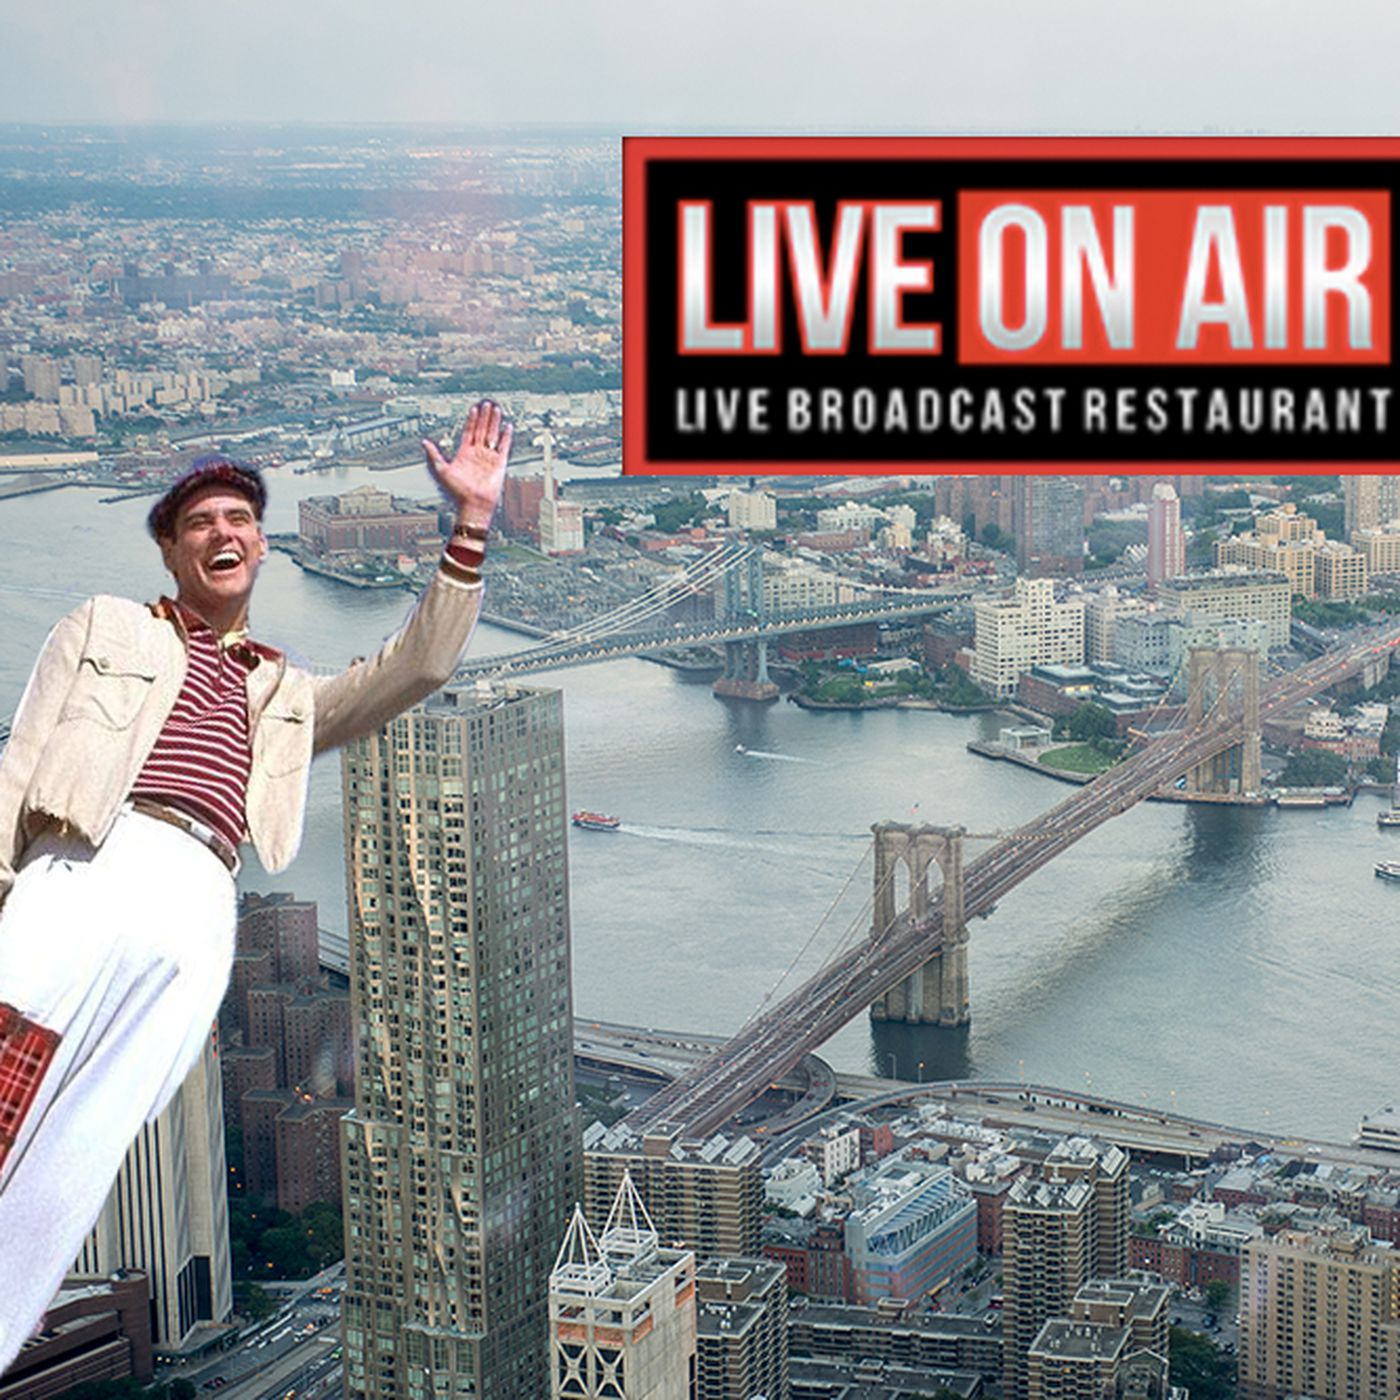 Live-Stream Restaurant Brings a Touch of 'The Truman Show' to ...